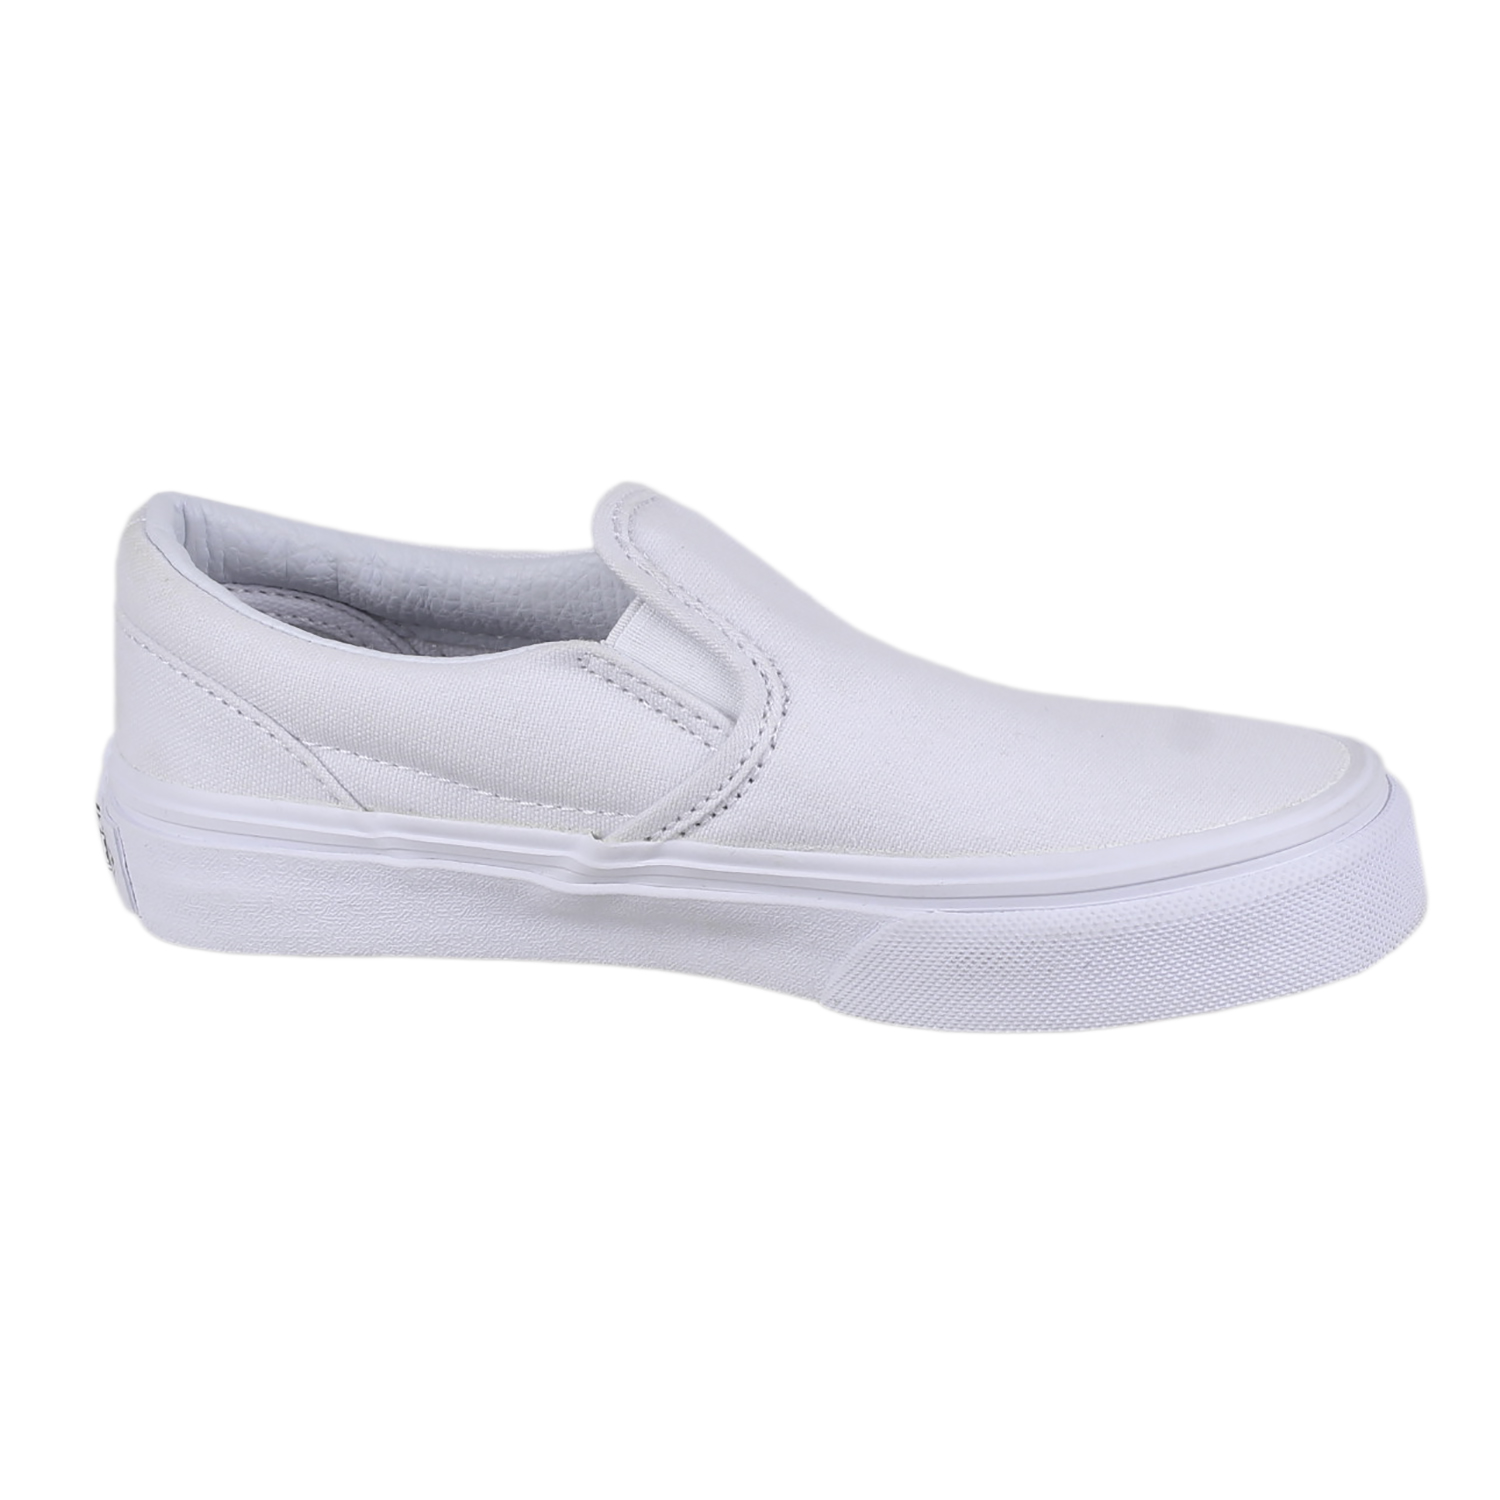 f11c49f0ea Details about Vans Kids Classic Slip-On Skate Shoes VN-0ZBUENS True White 13